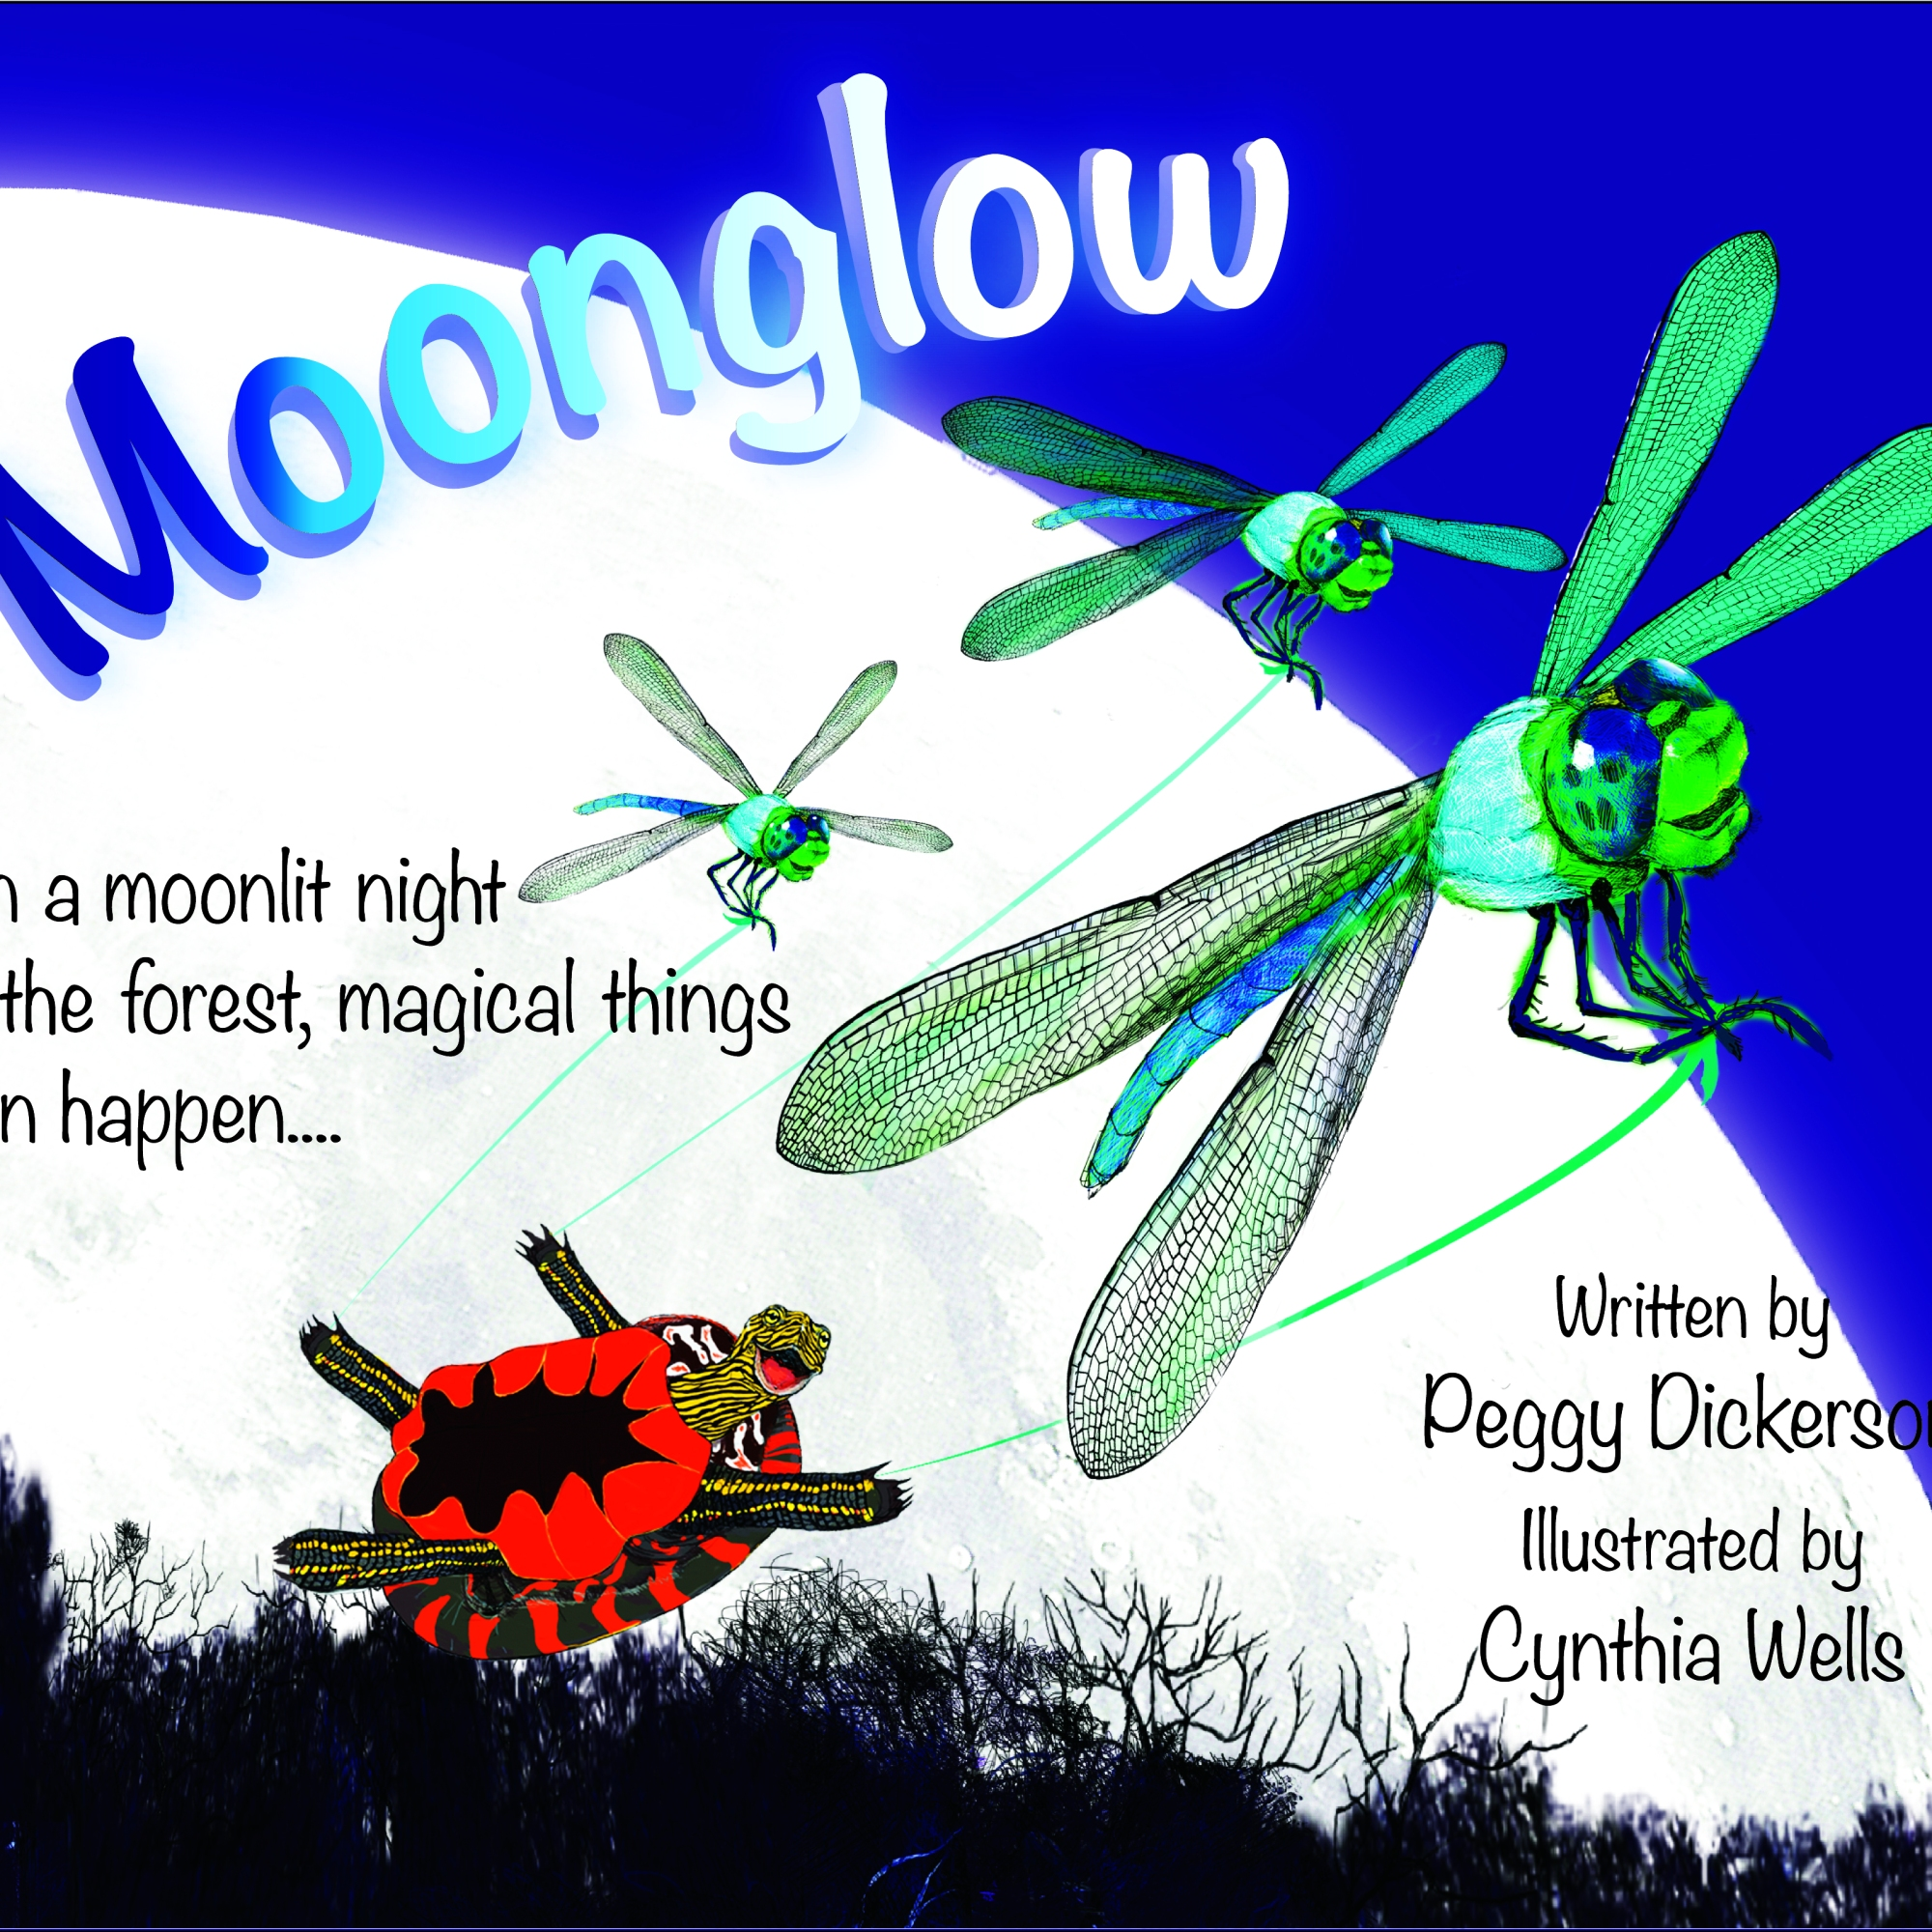 Three Dragonfly's pulling a tortoise through the night sky in front of a very large moon